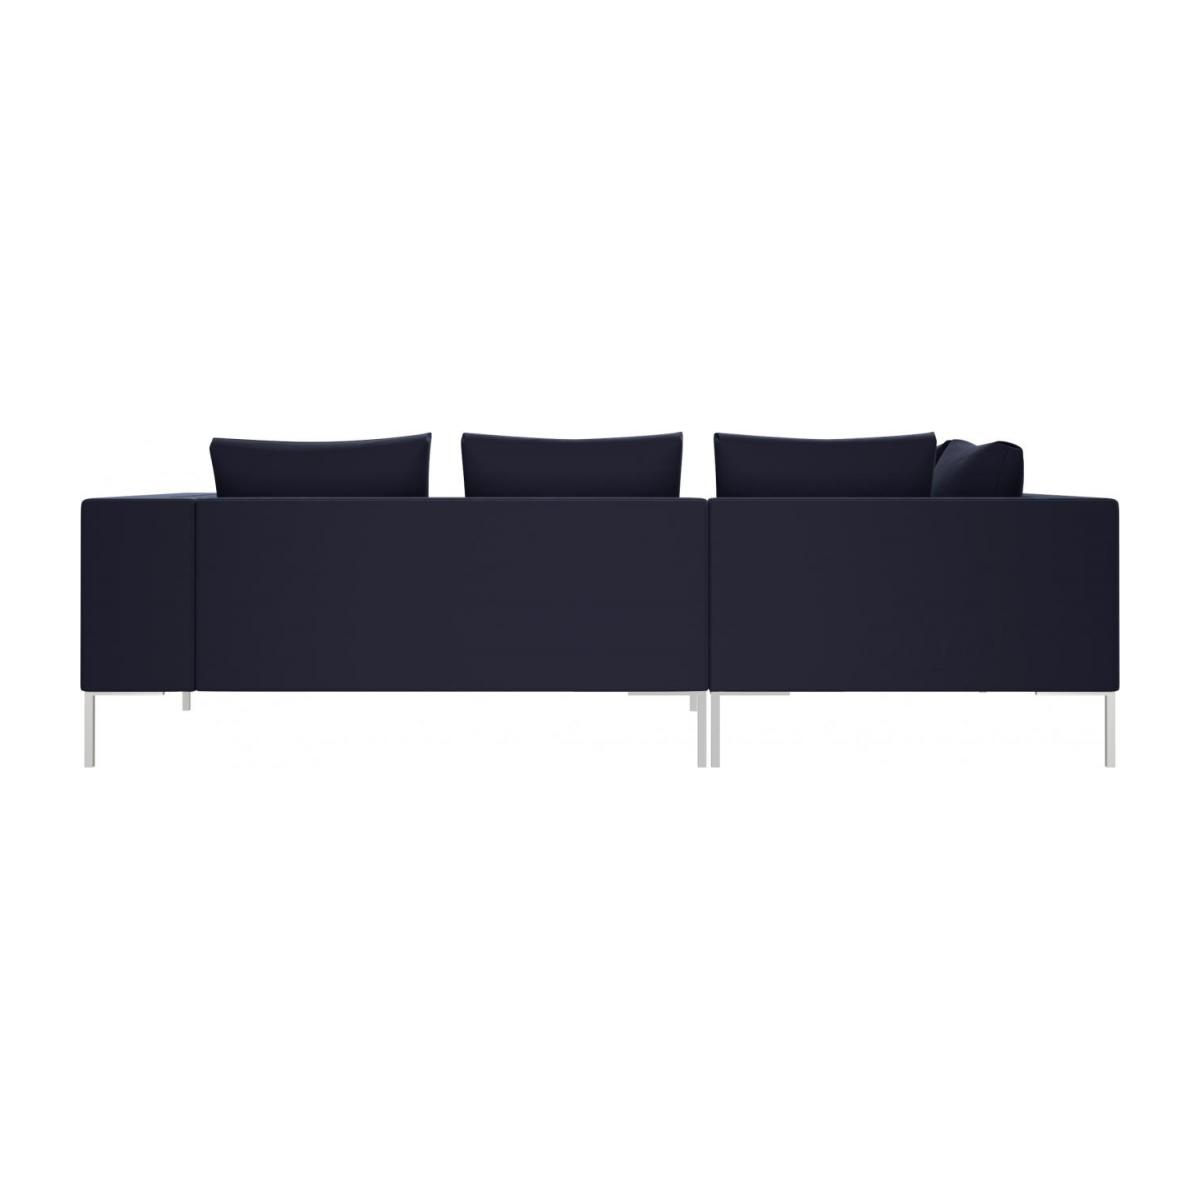 2 seater sofa with chaise longue on the left in Super Velvet fabric, dark blue  n°3